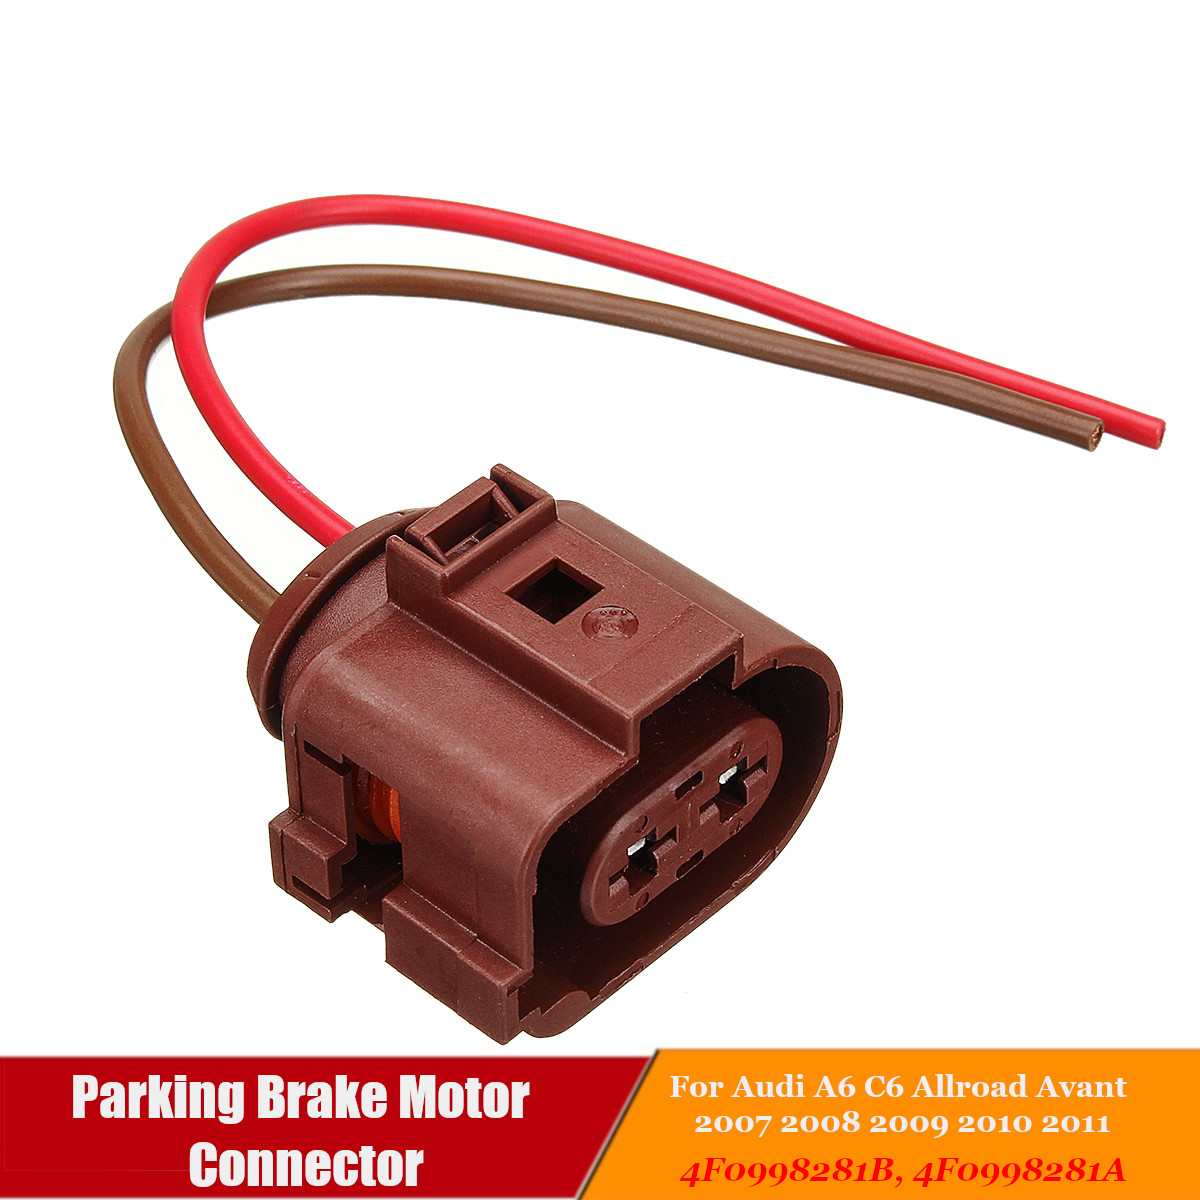 hight resolution of 4f0998281b car parking brake motor wiring harness connector for audi a6 c6 allroad avant 2007